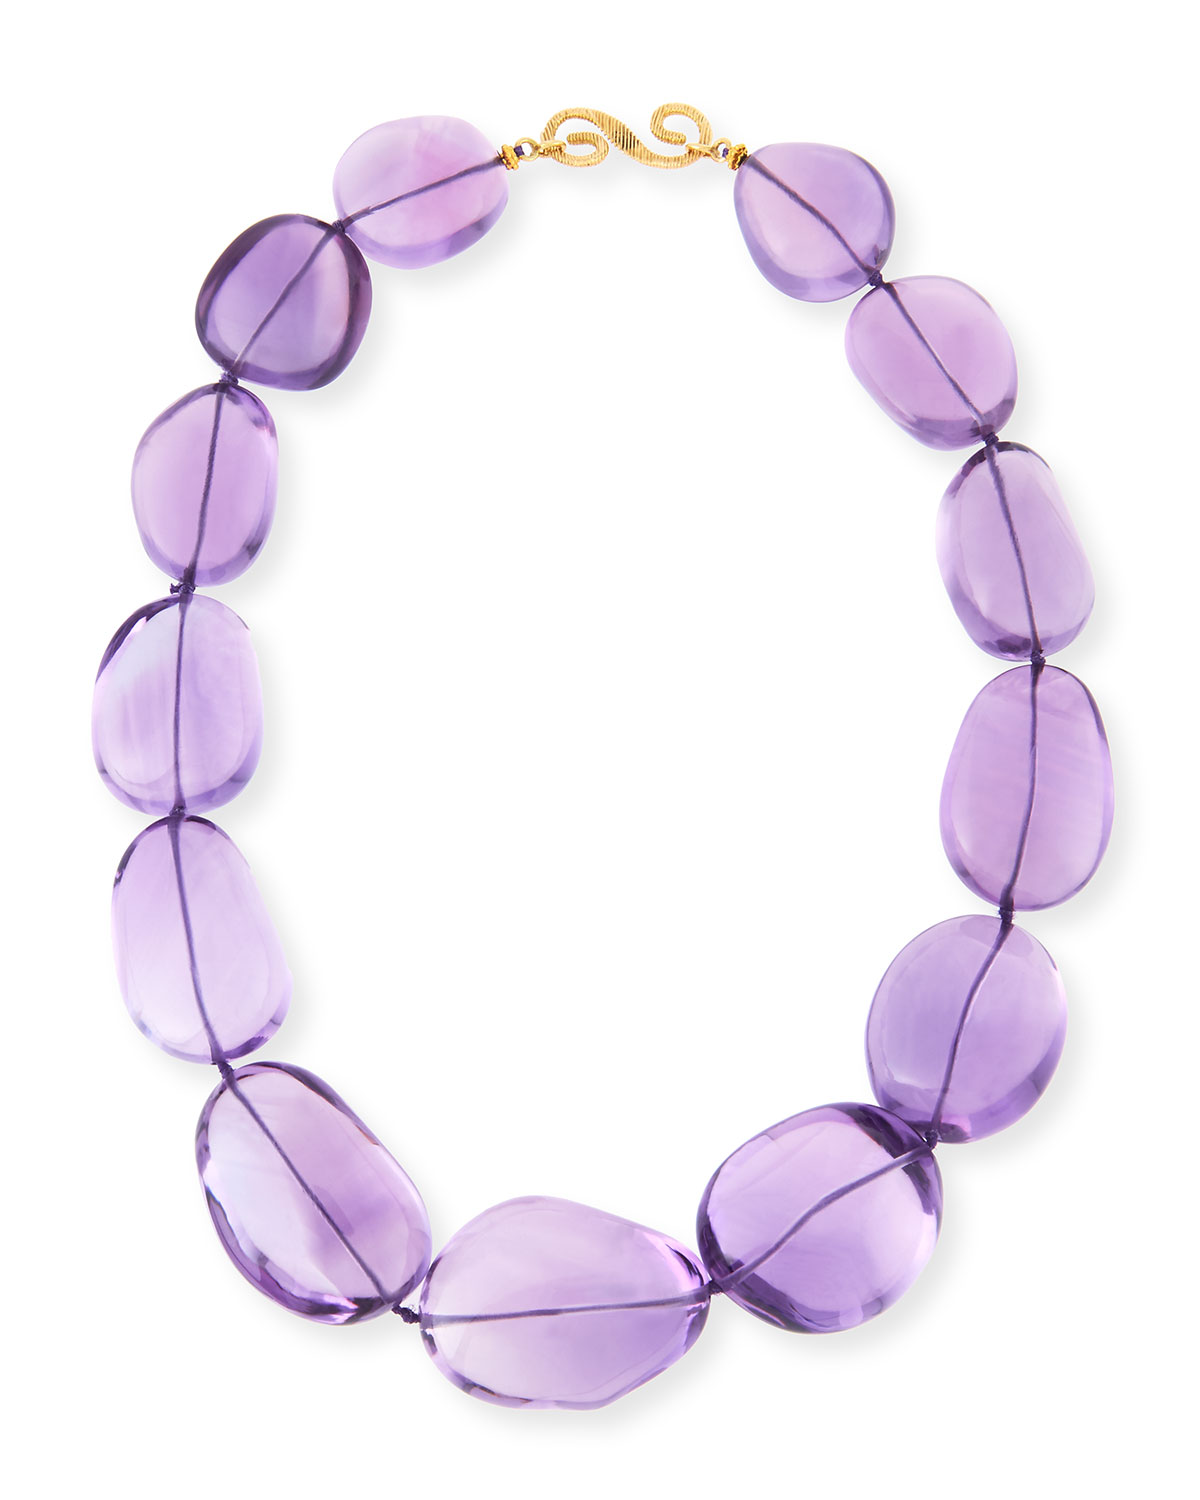 POLISHED AMETHYST NUGGET NECKLACE